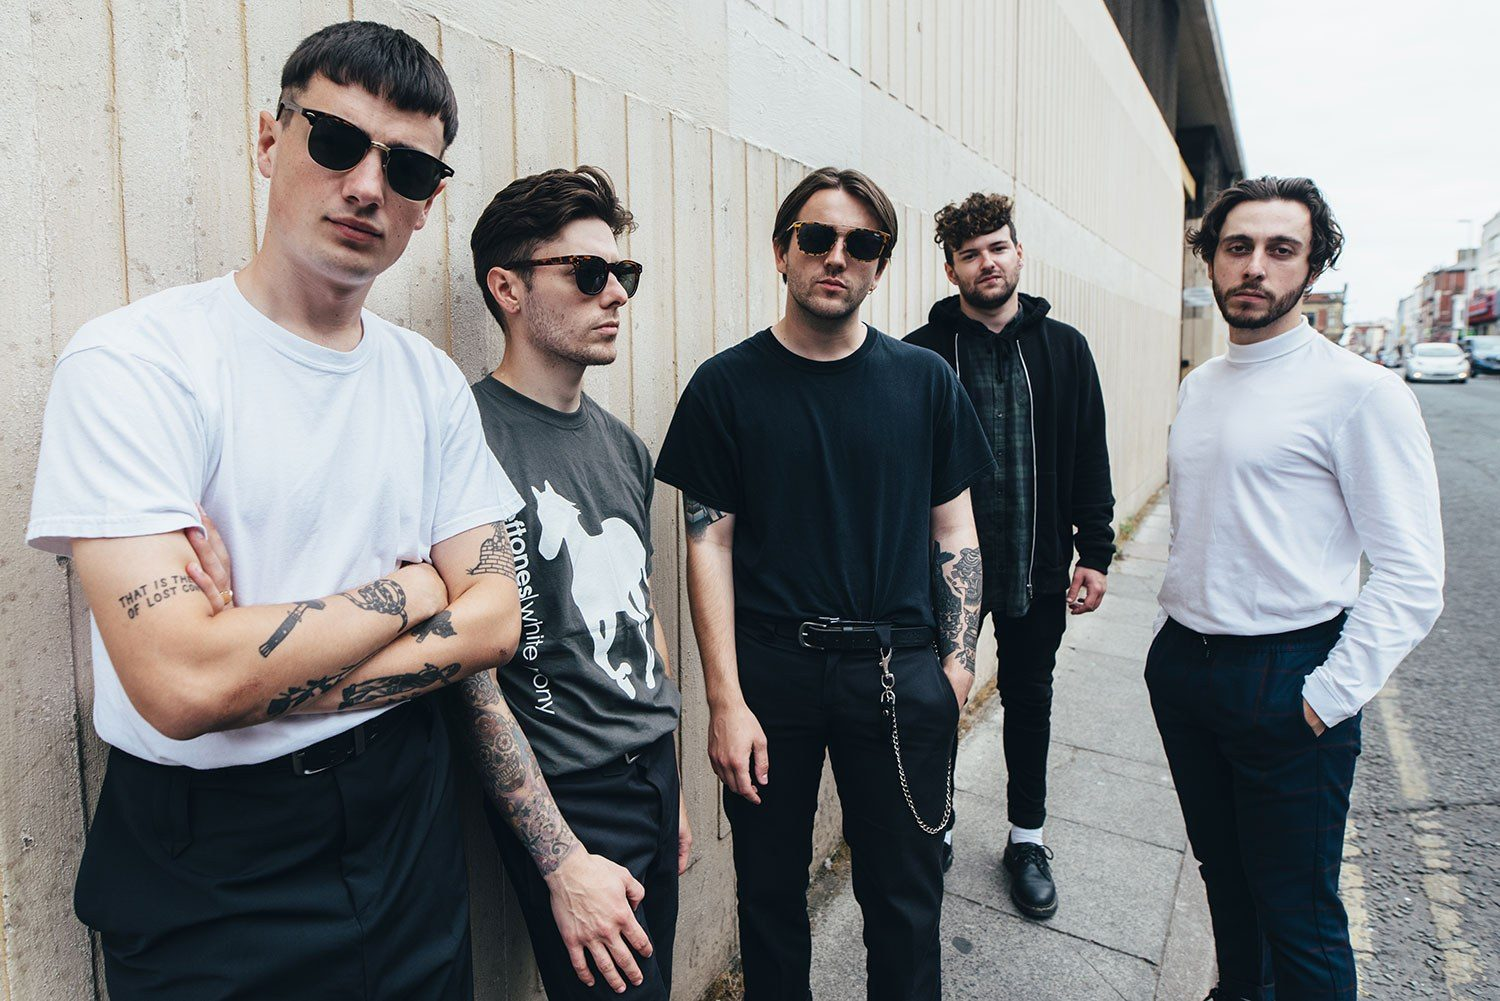 Boston Manor: There's no place like home